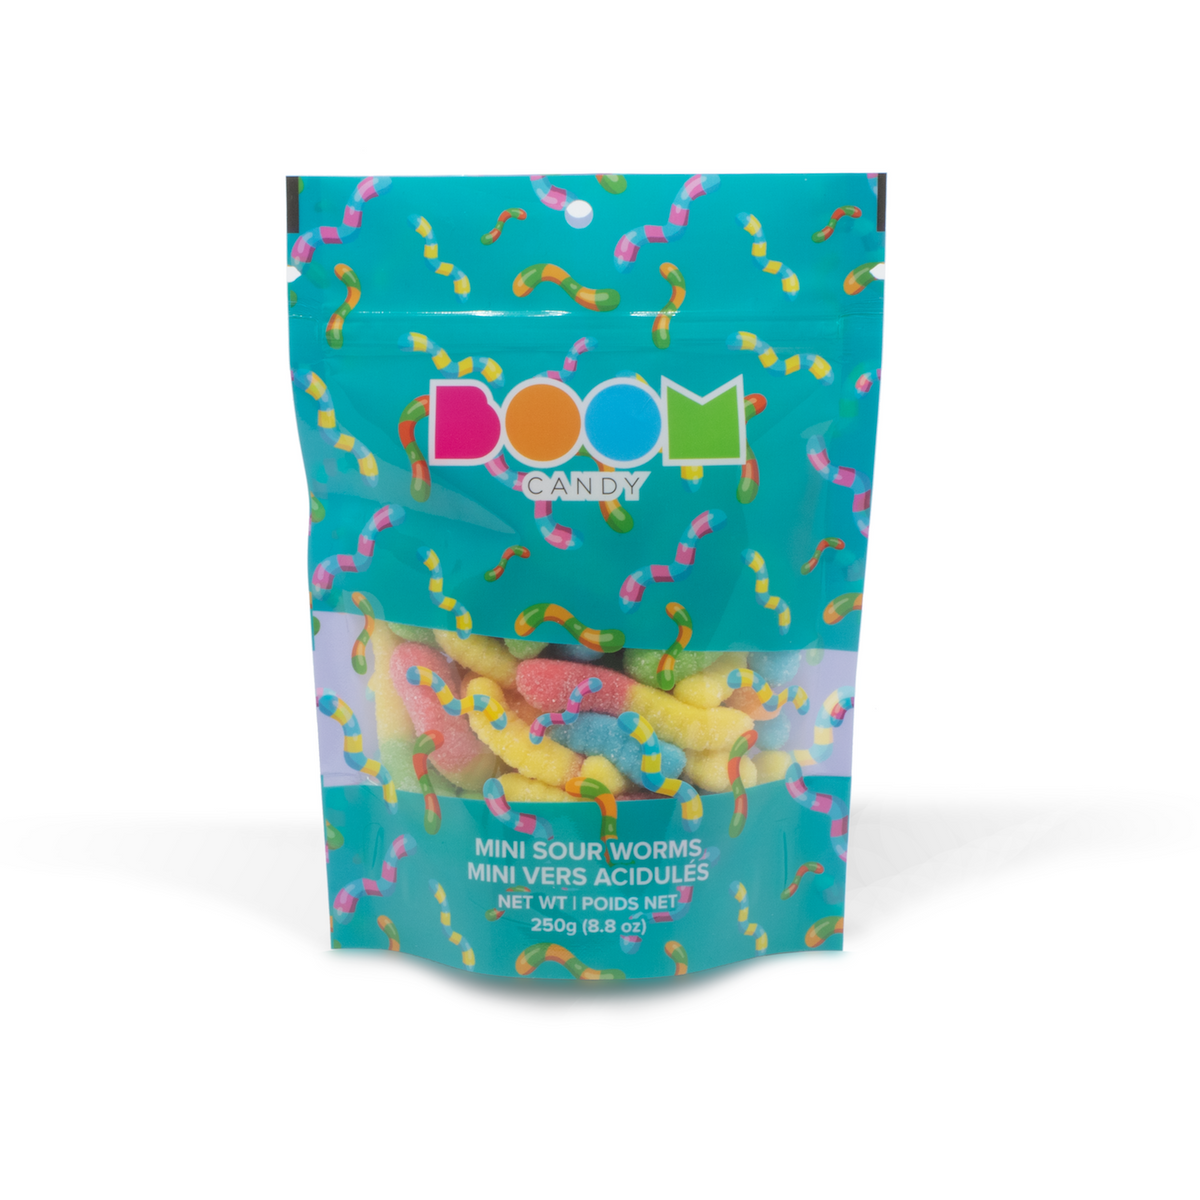 Mini Sour Worms Candy Bag